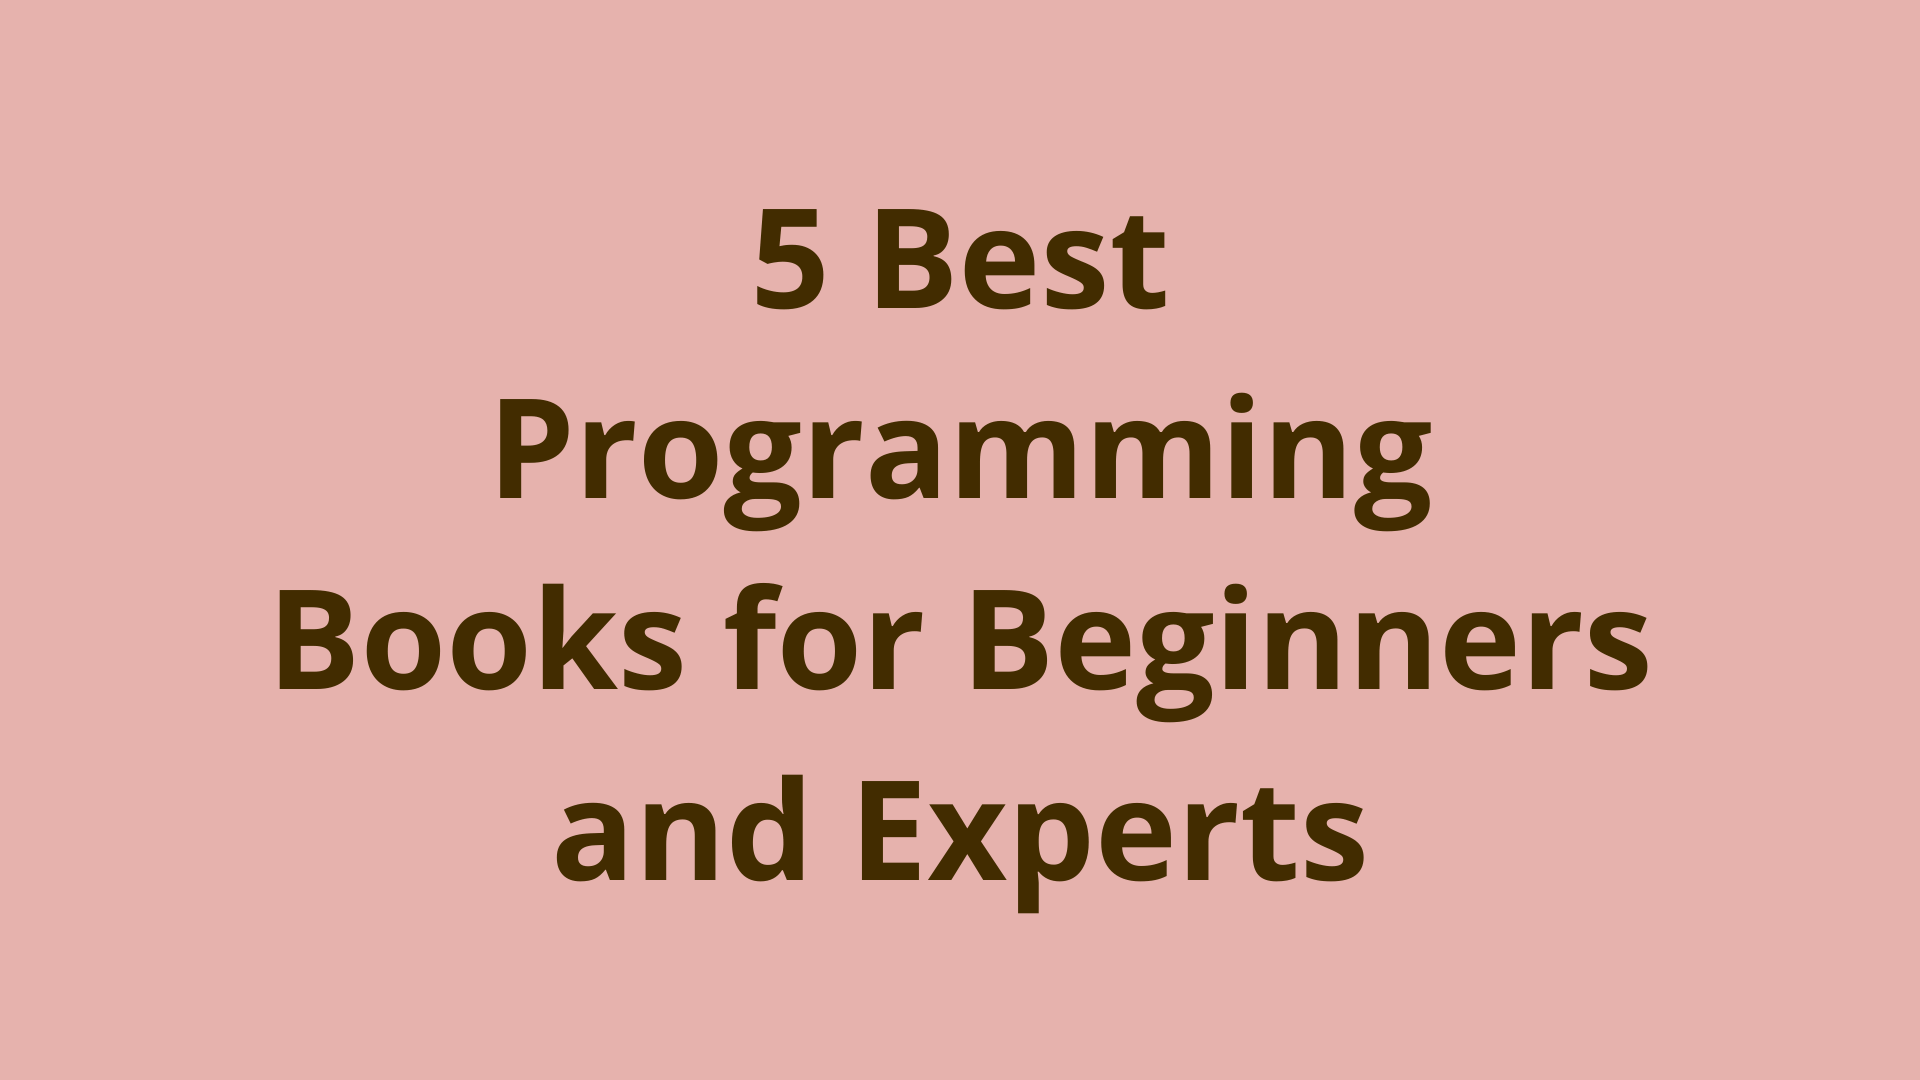 Image of 5 best programming books for beginners and experts in 2019